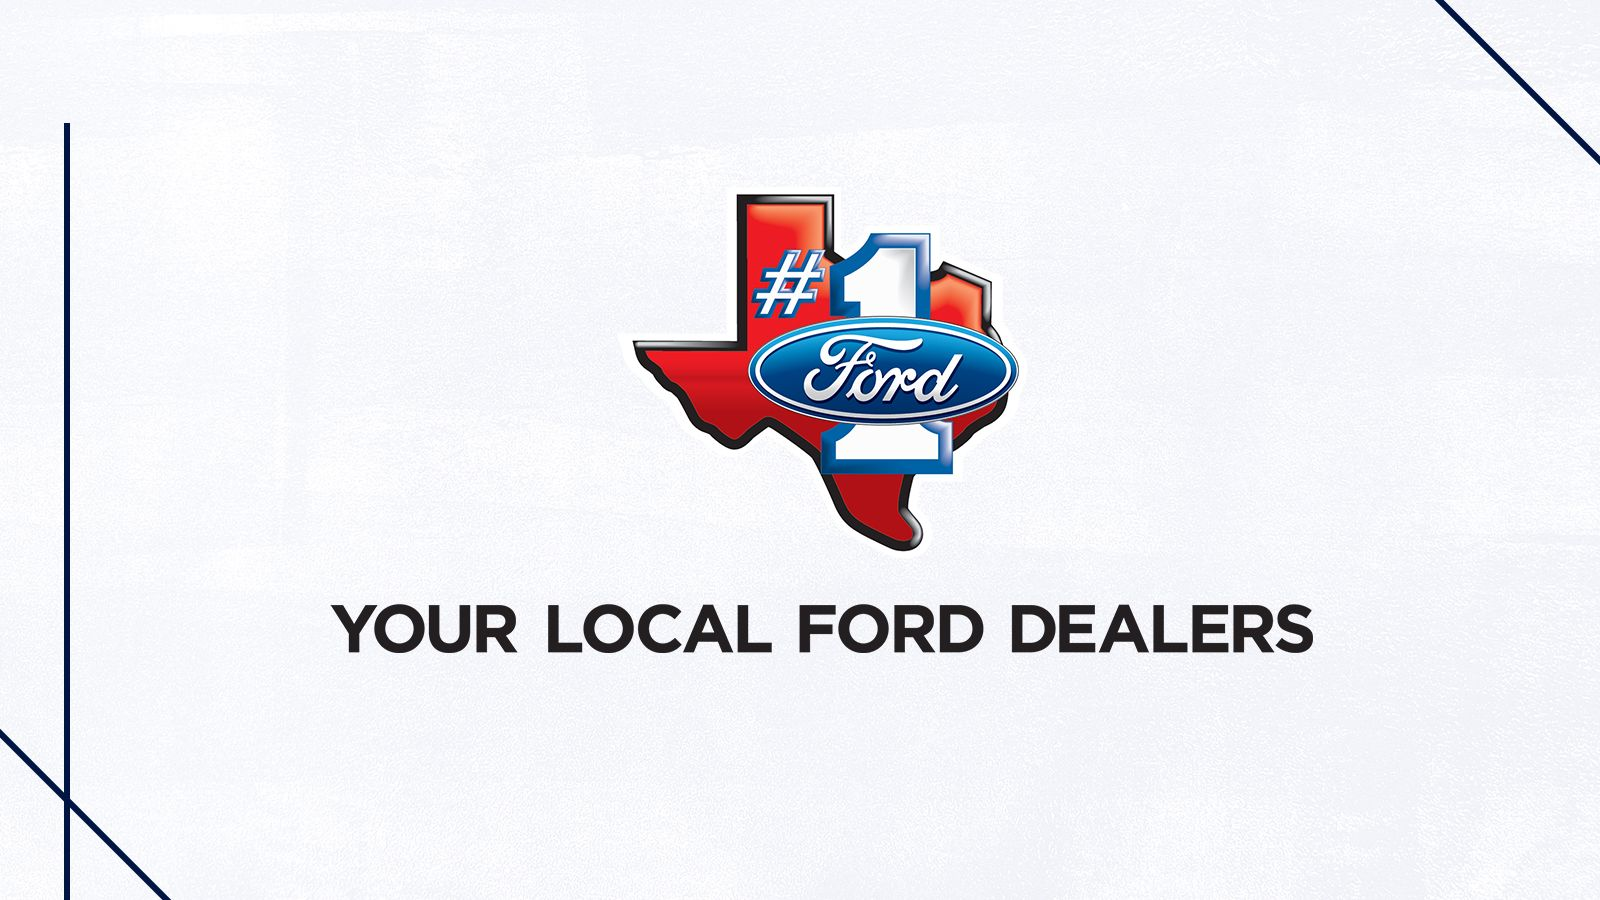 Ride with TORO. presented by Houston Area Ford Dealers